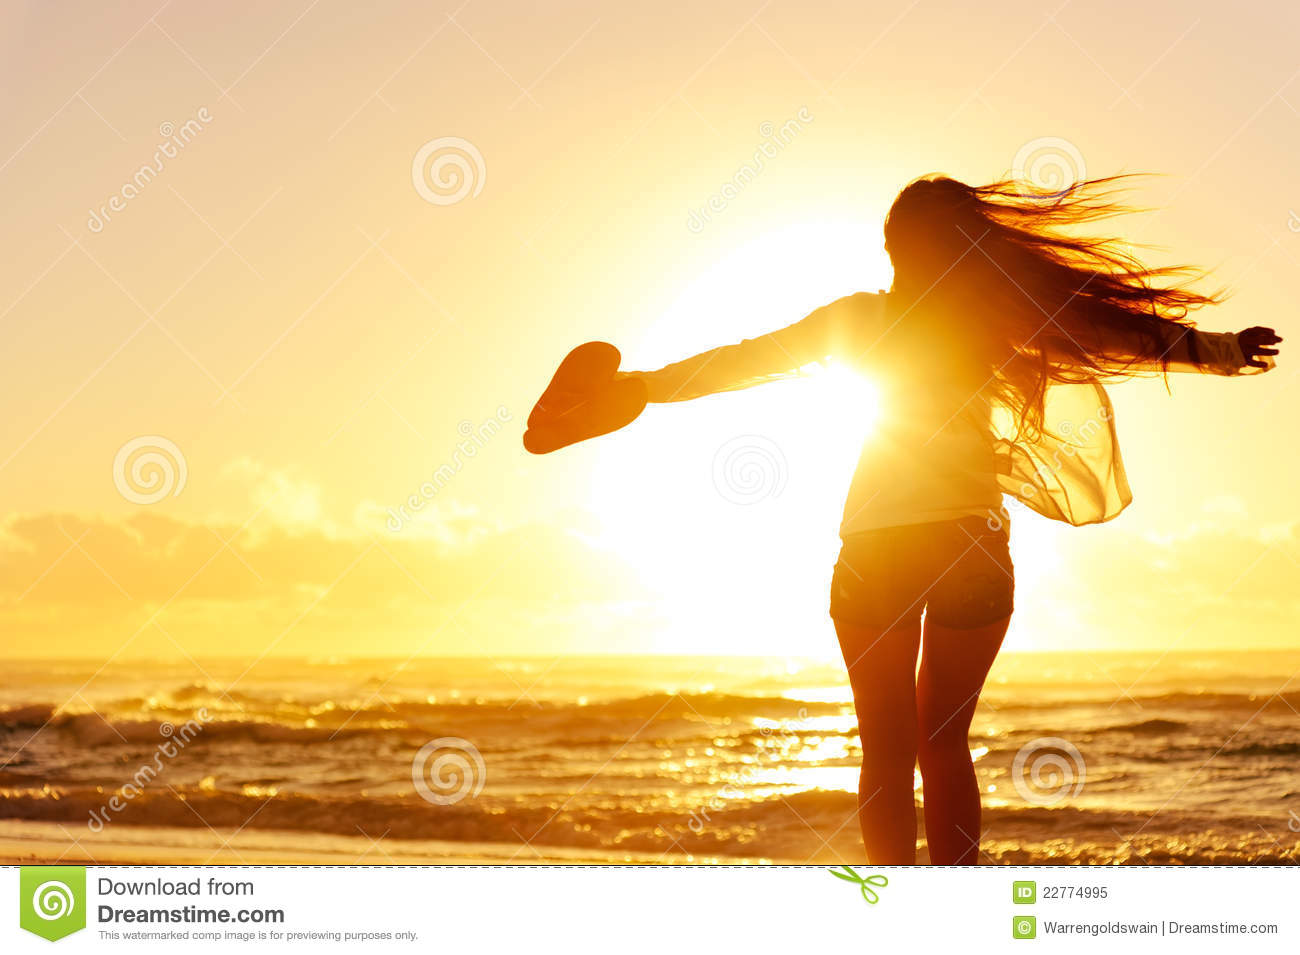 Imagenes Libres Y Gratis Silhouette Of A Woman Dancing By The Ocean Royalty Free